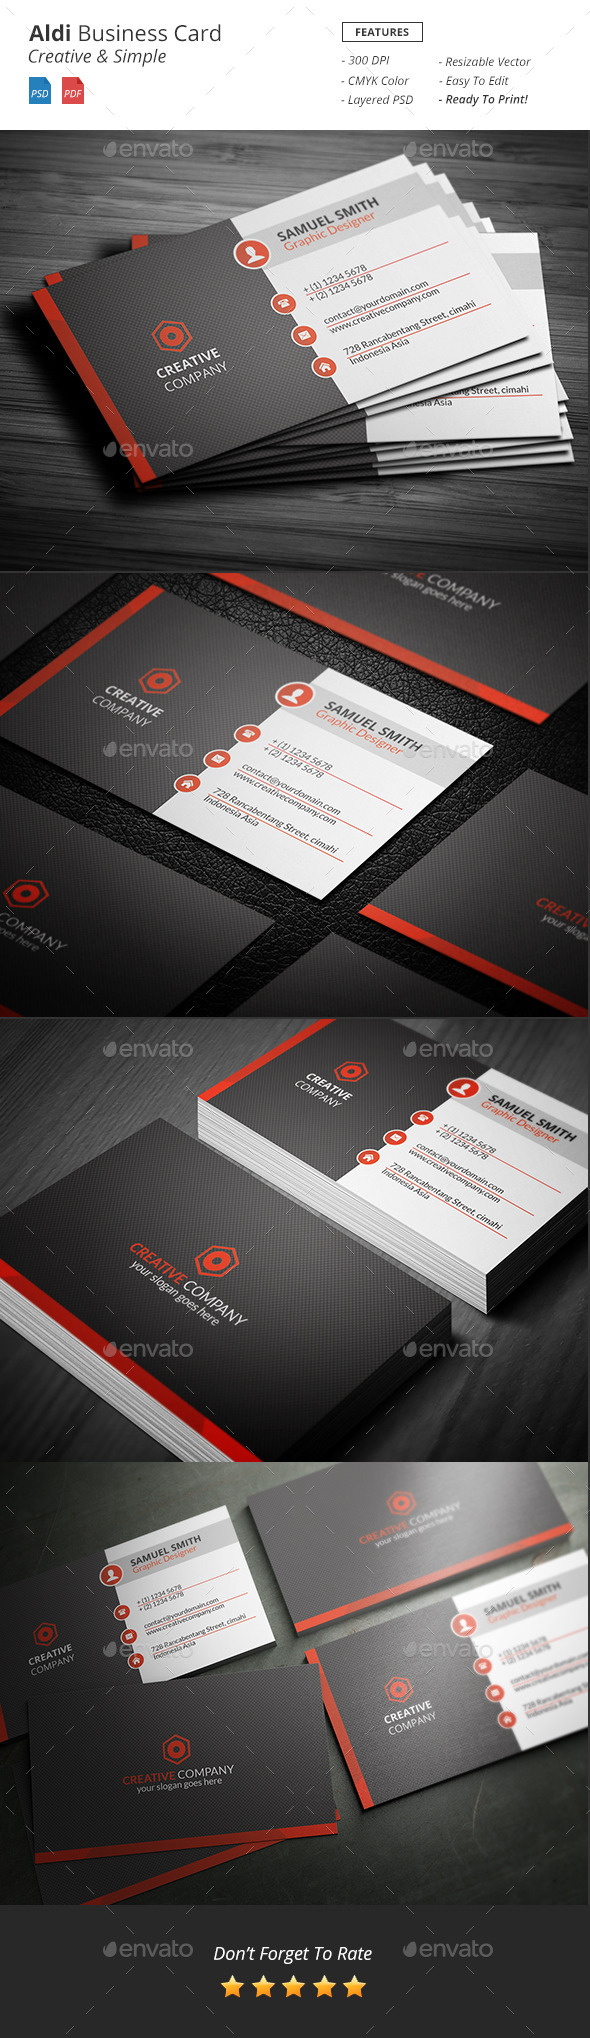 GraphicRiver Aldi Creative Business Card 11923064